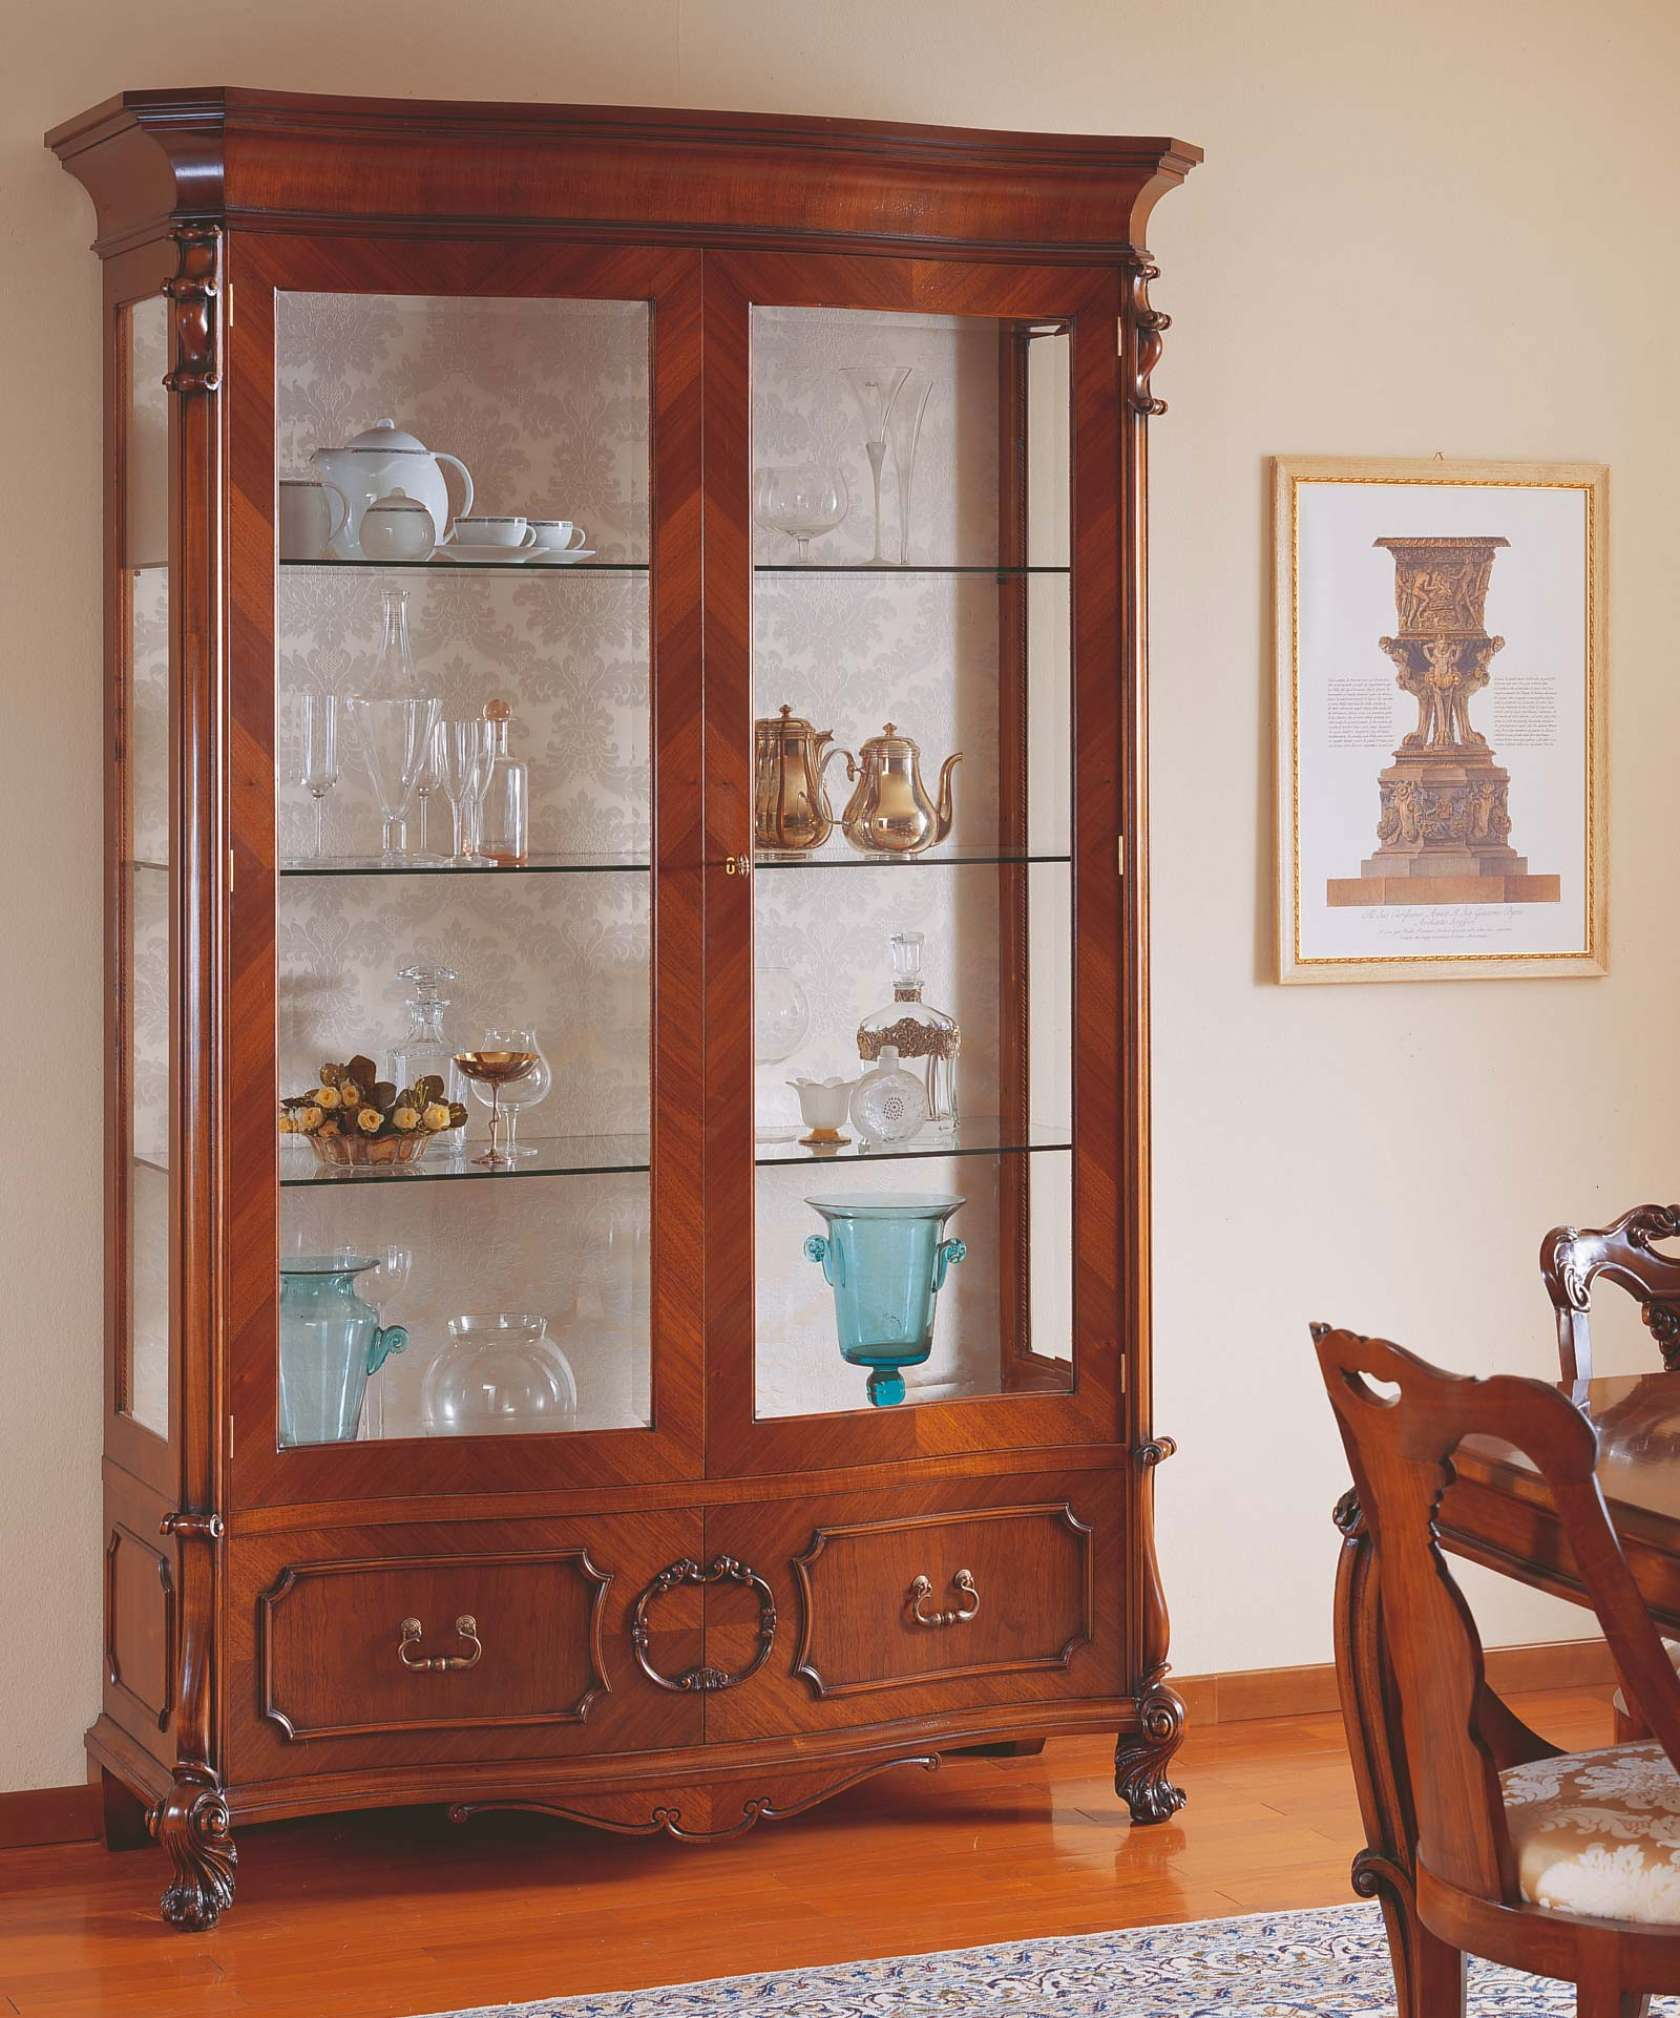 Exceptional Showcase Glass Doors #11: 18th Century Siciliano Glass Showcase Two Doors